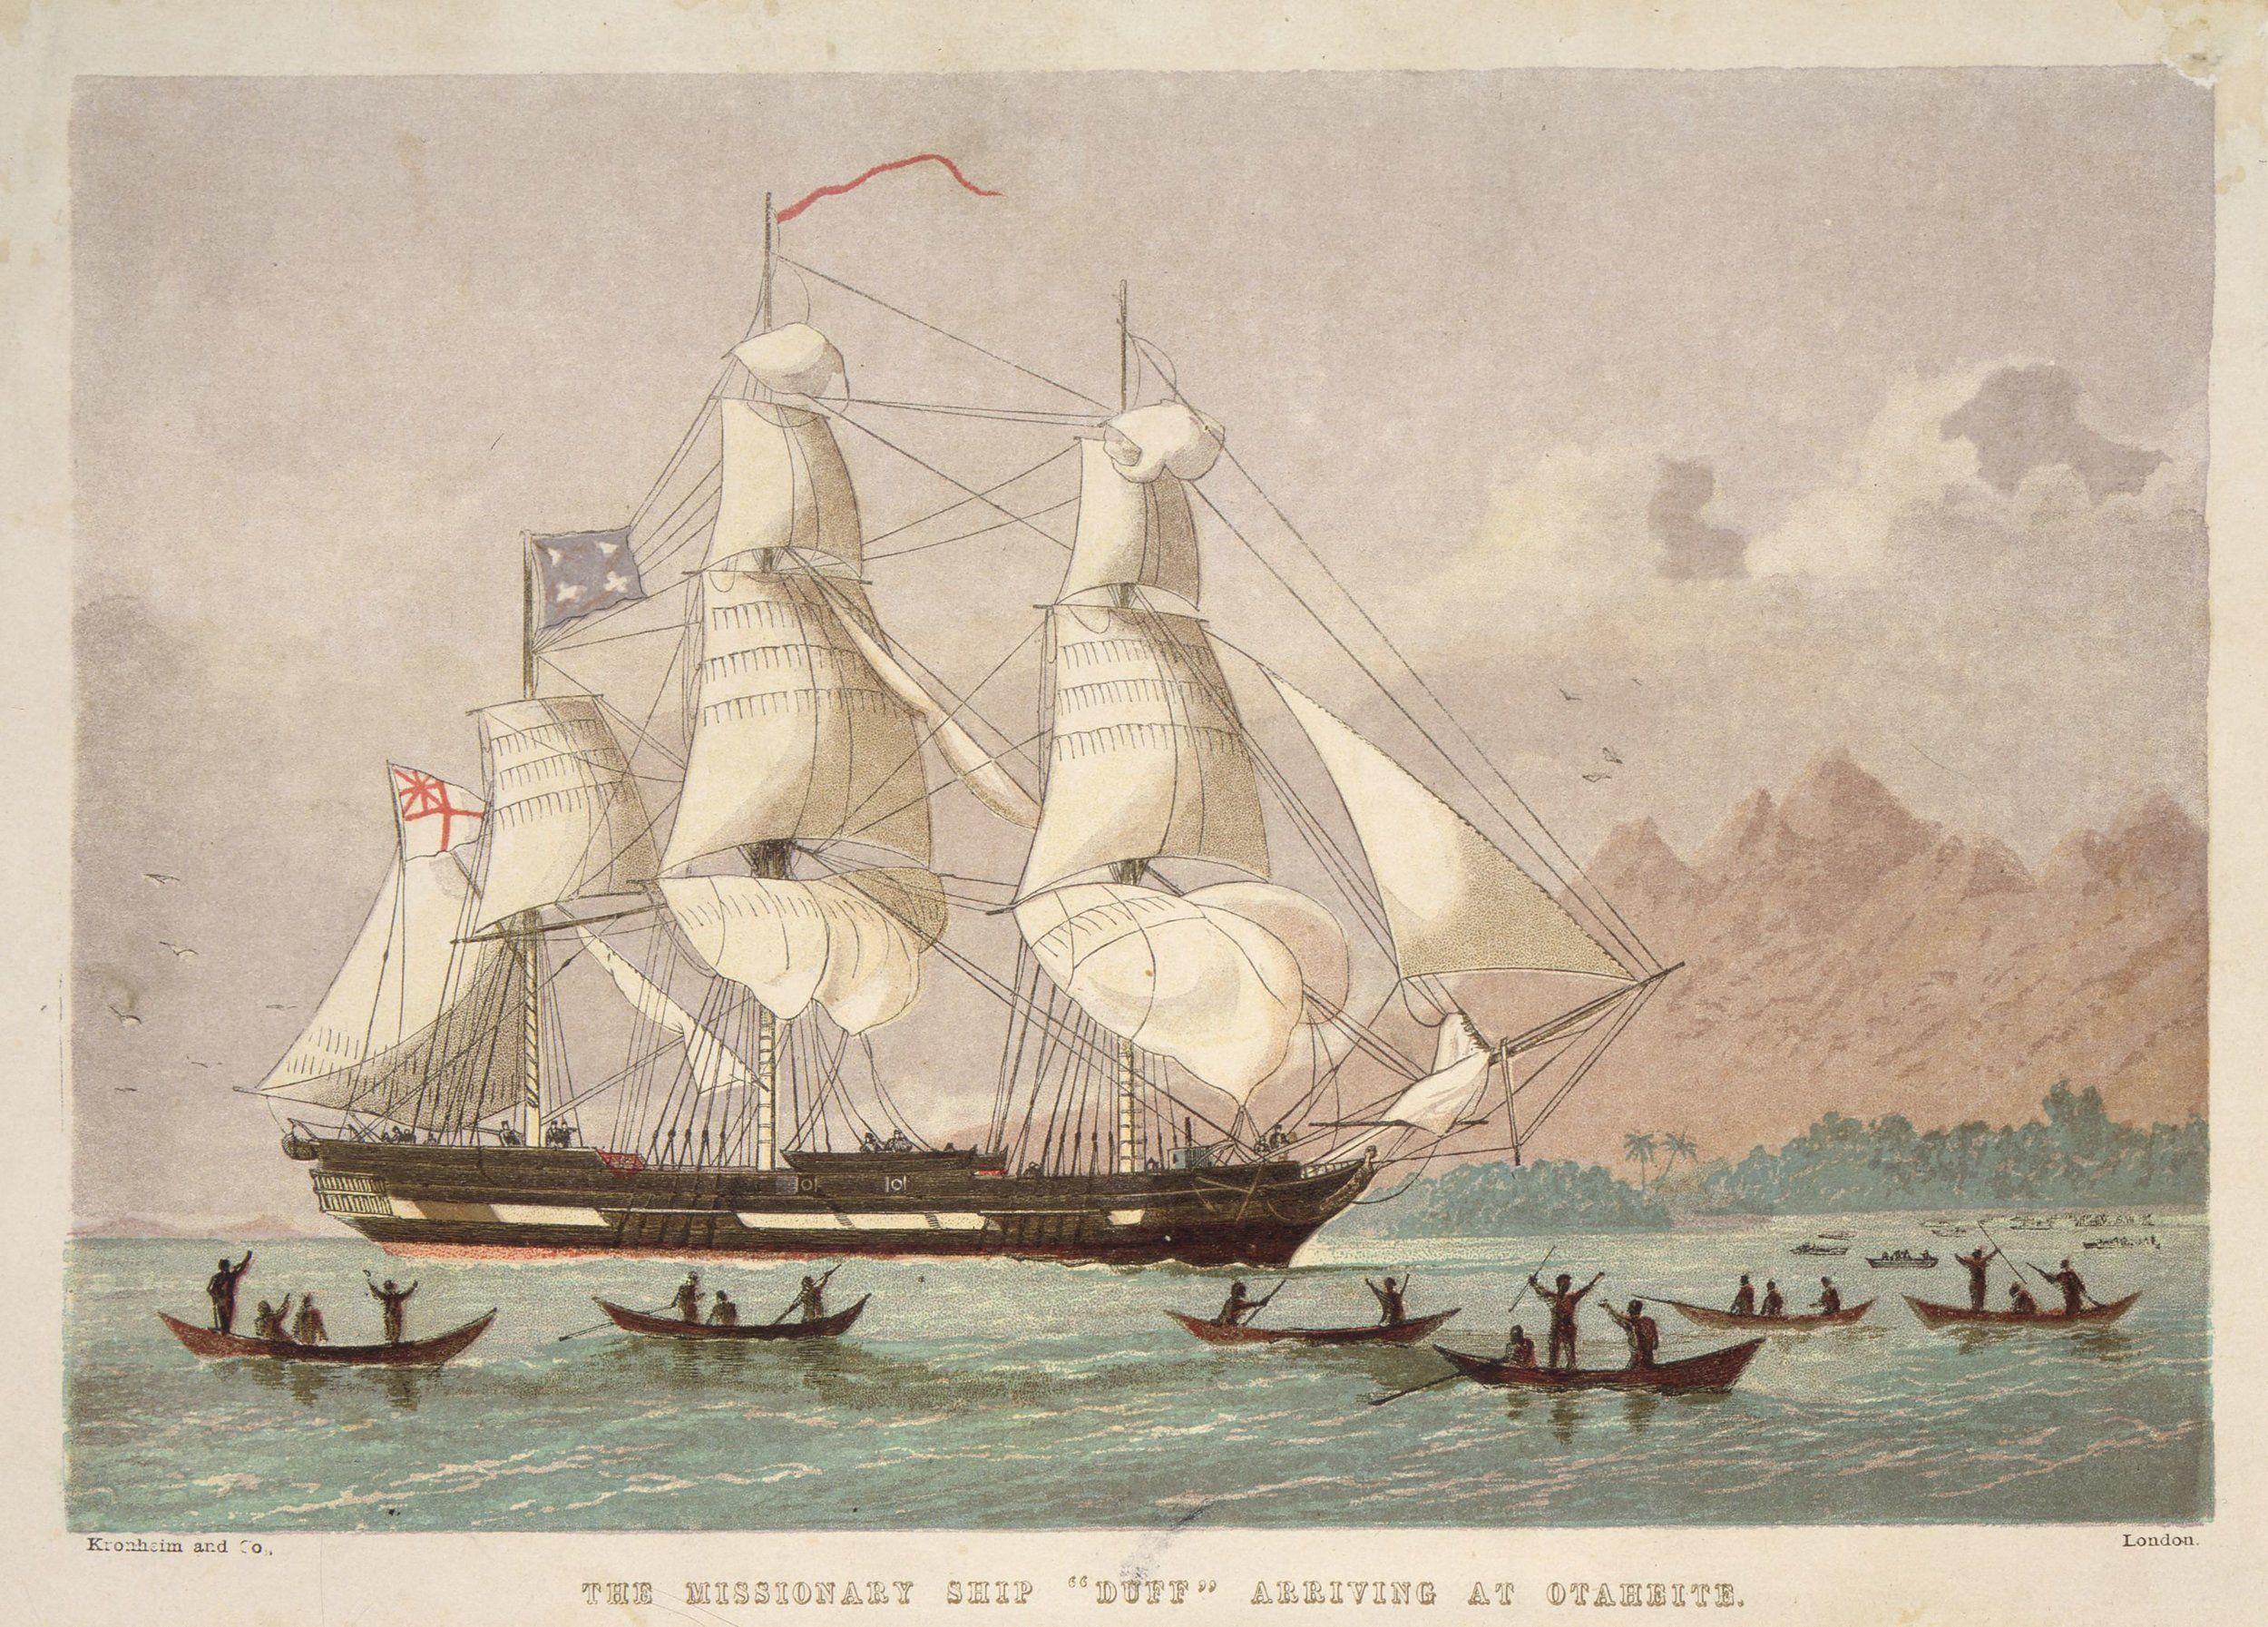 """The missionary ship """" Duff """" arriving [ca 1797] at Otaheite. [Printed by] Kronheim and Co. London [1820s?]."""